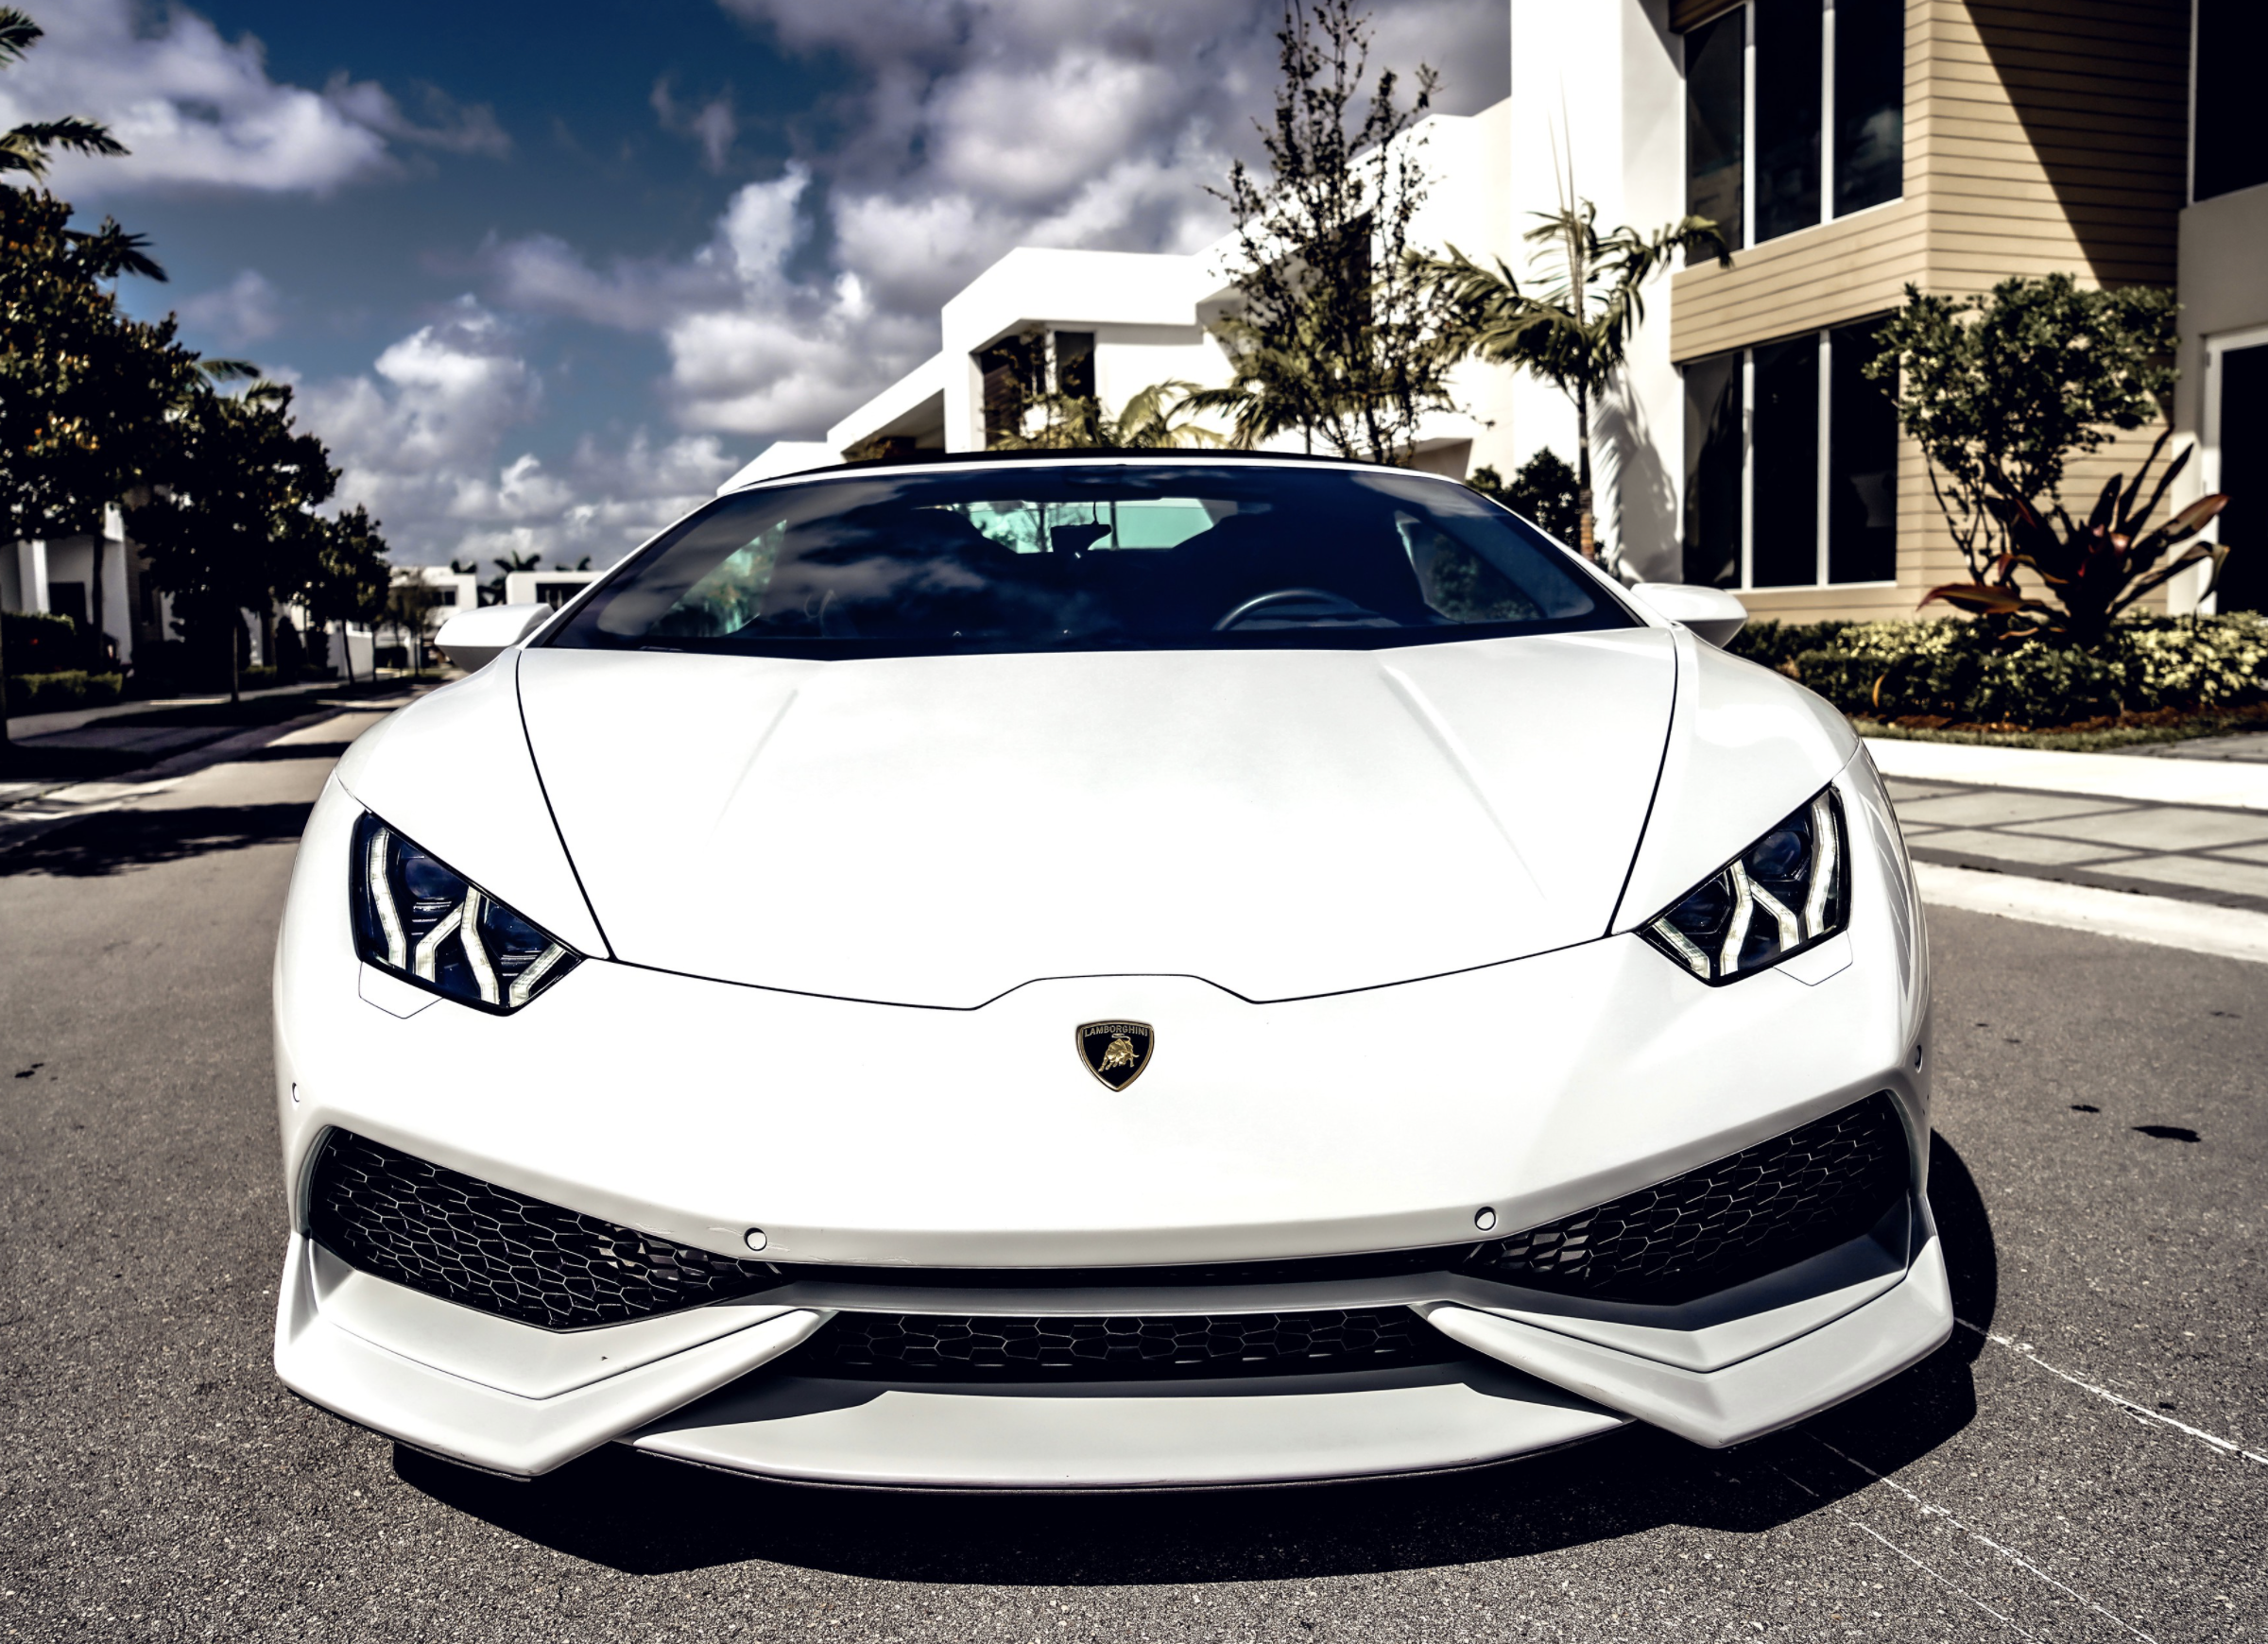 Image #2 of our  LAMBORGHINI HURACAN WHITE    In Miami Fort Lauderdale Palm Beach South Florida